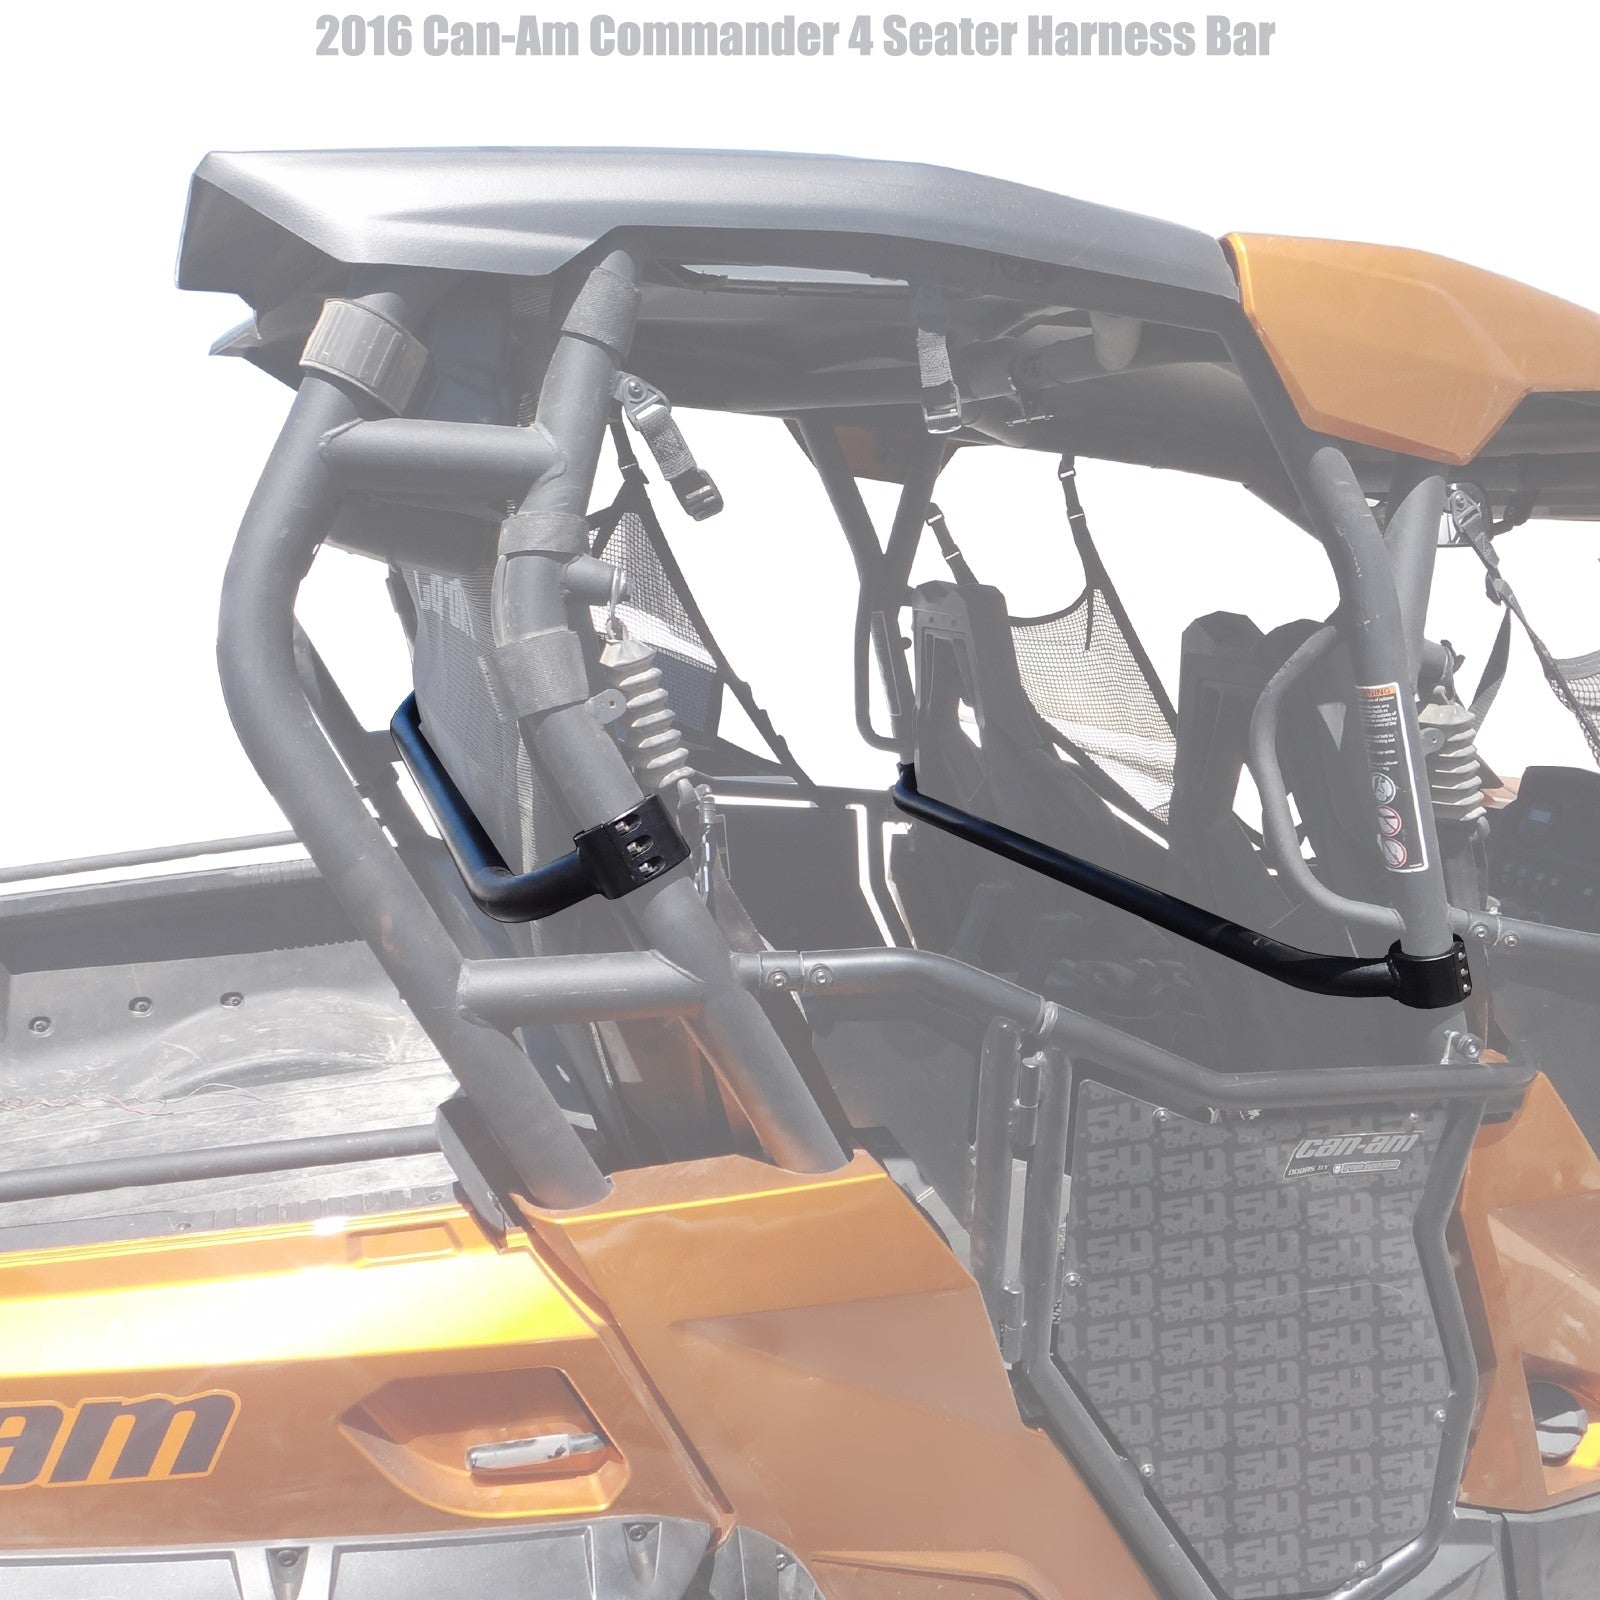 Can-Am Commander 4 Seater Harness Bar 50 Caliber Racing